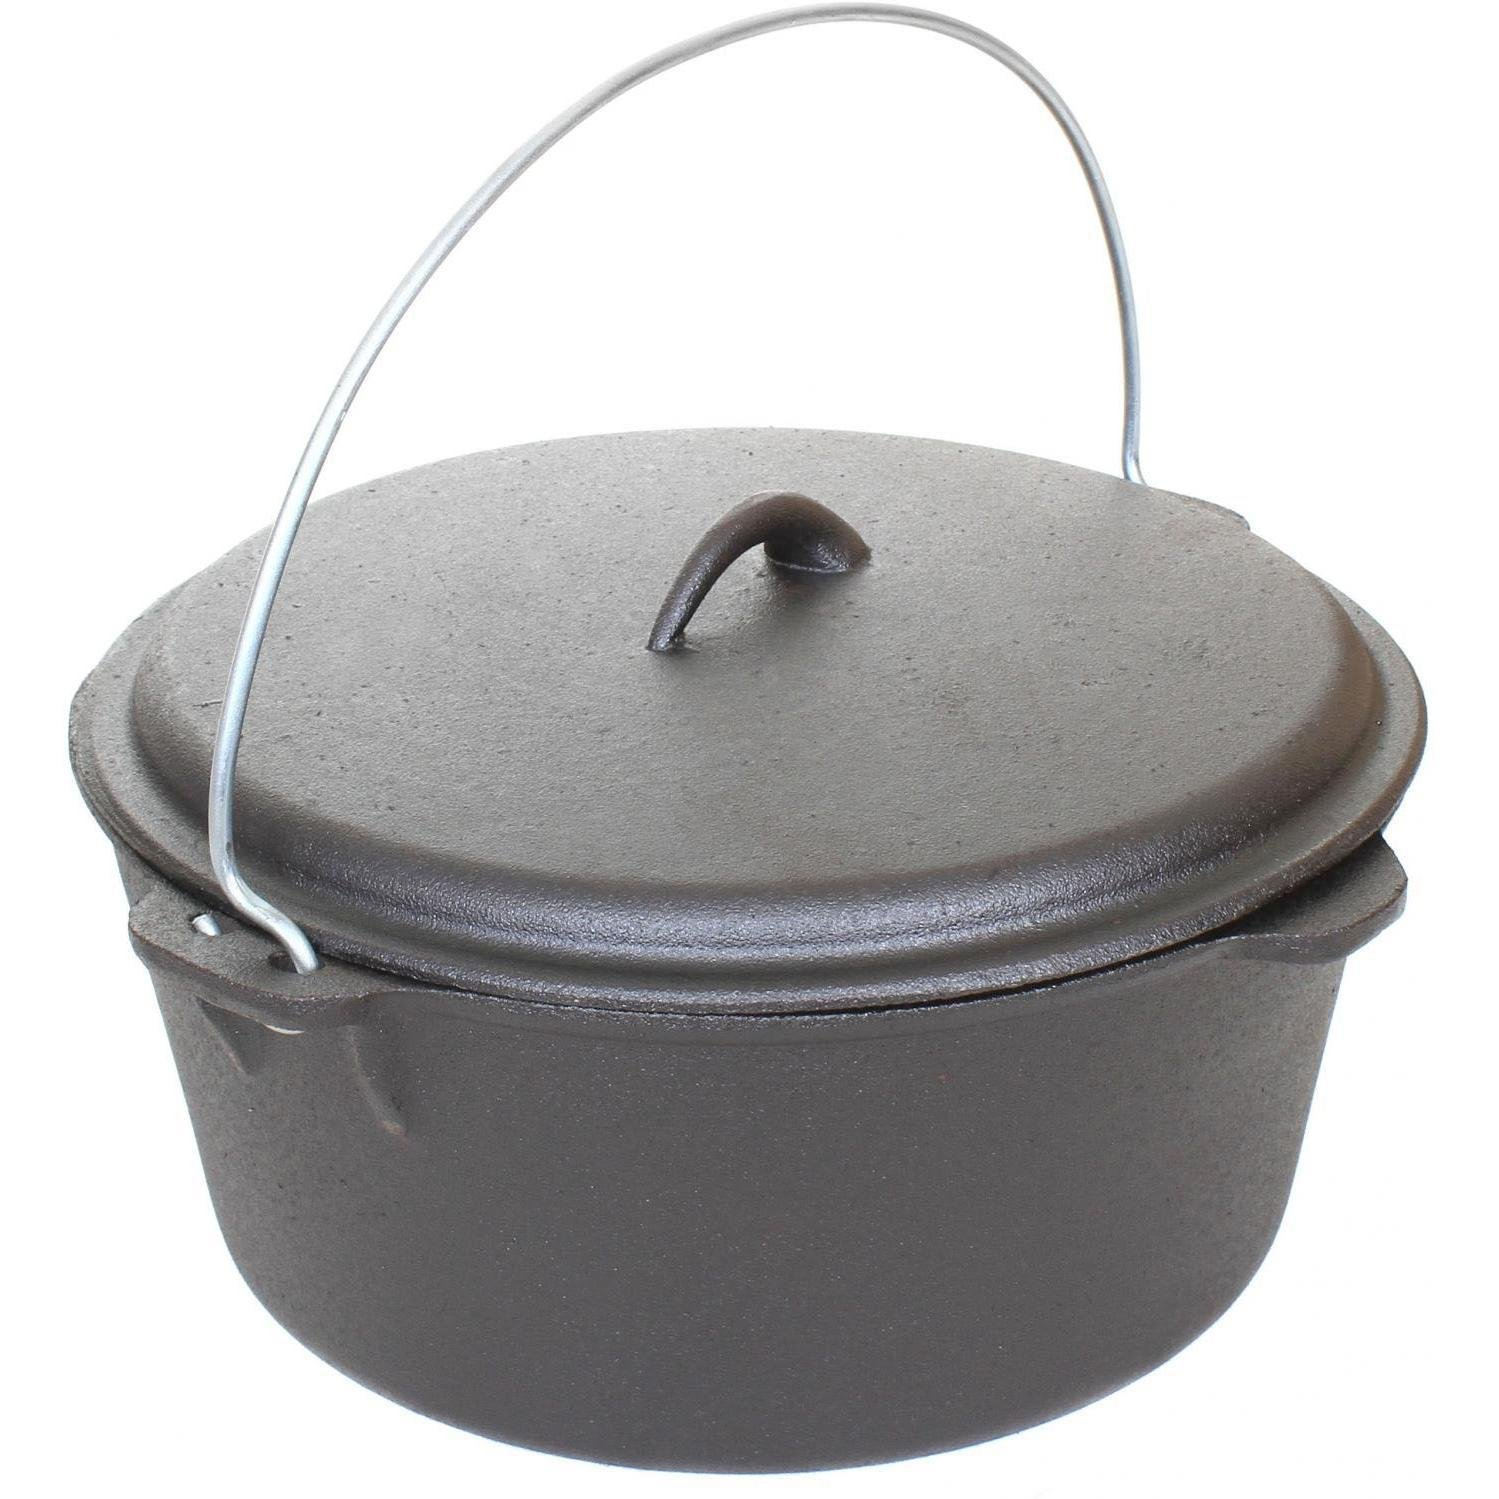 Cajun Cookware Dutch Ovens 9 Quart Cast Iron Dutch Oven